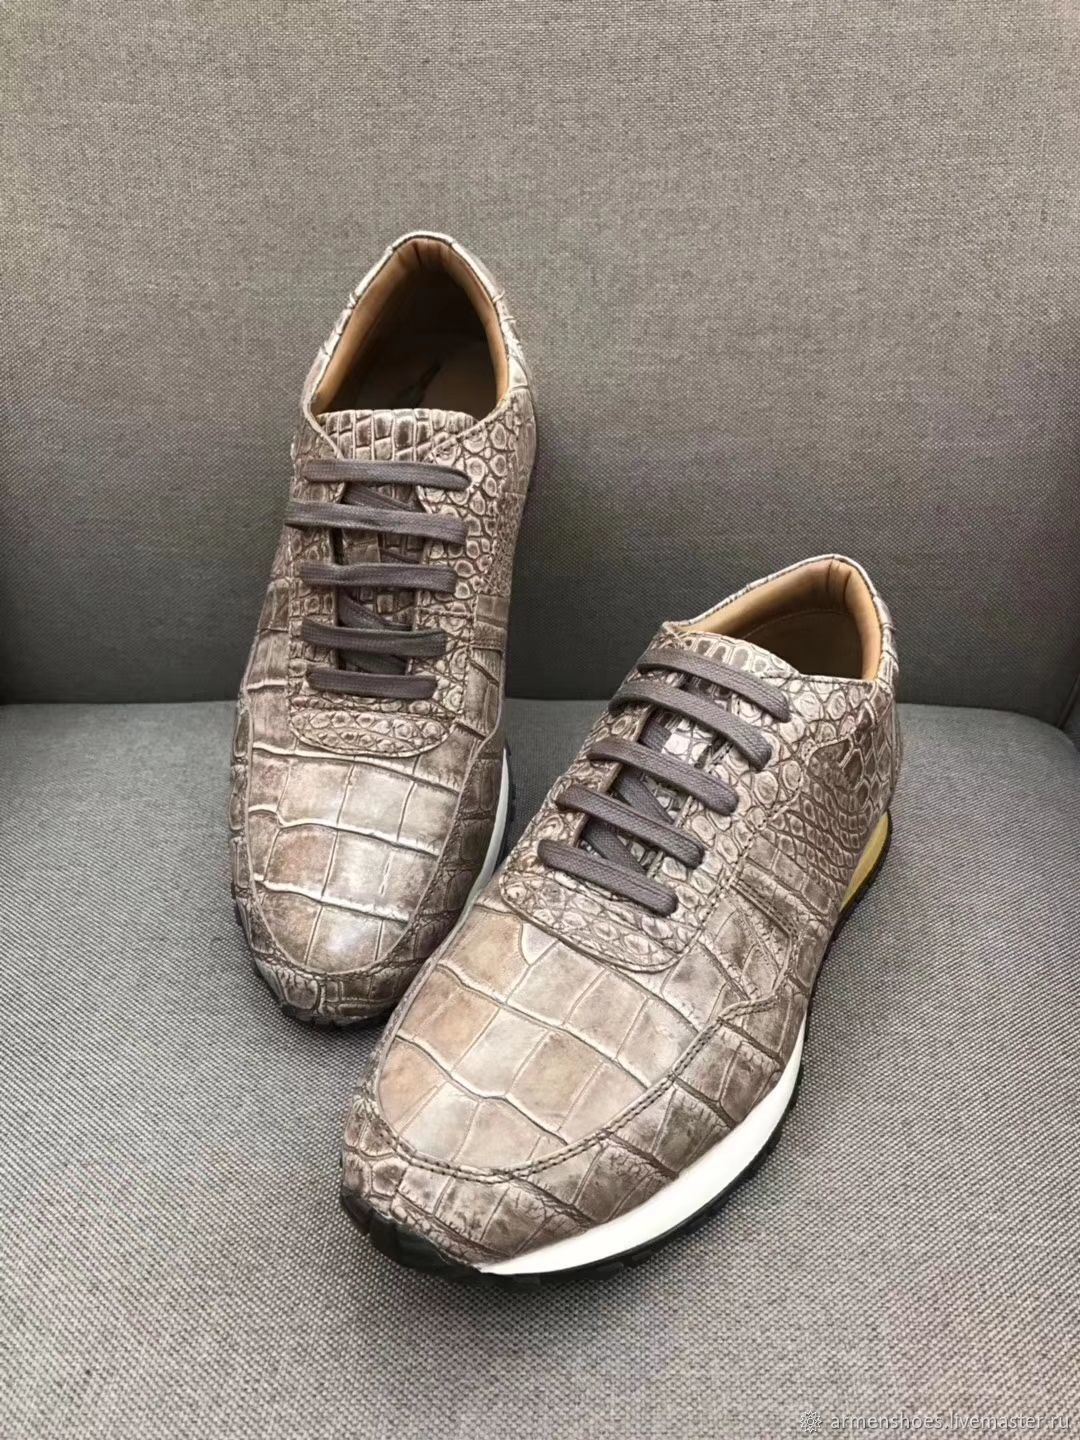 Sneakers made of crocodile skin, in exclusive paint, unisex model, Sneakers, Tosno,  Фото №1